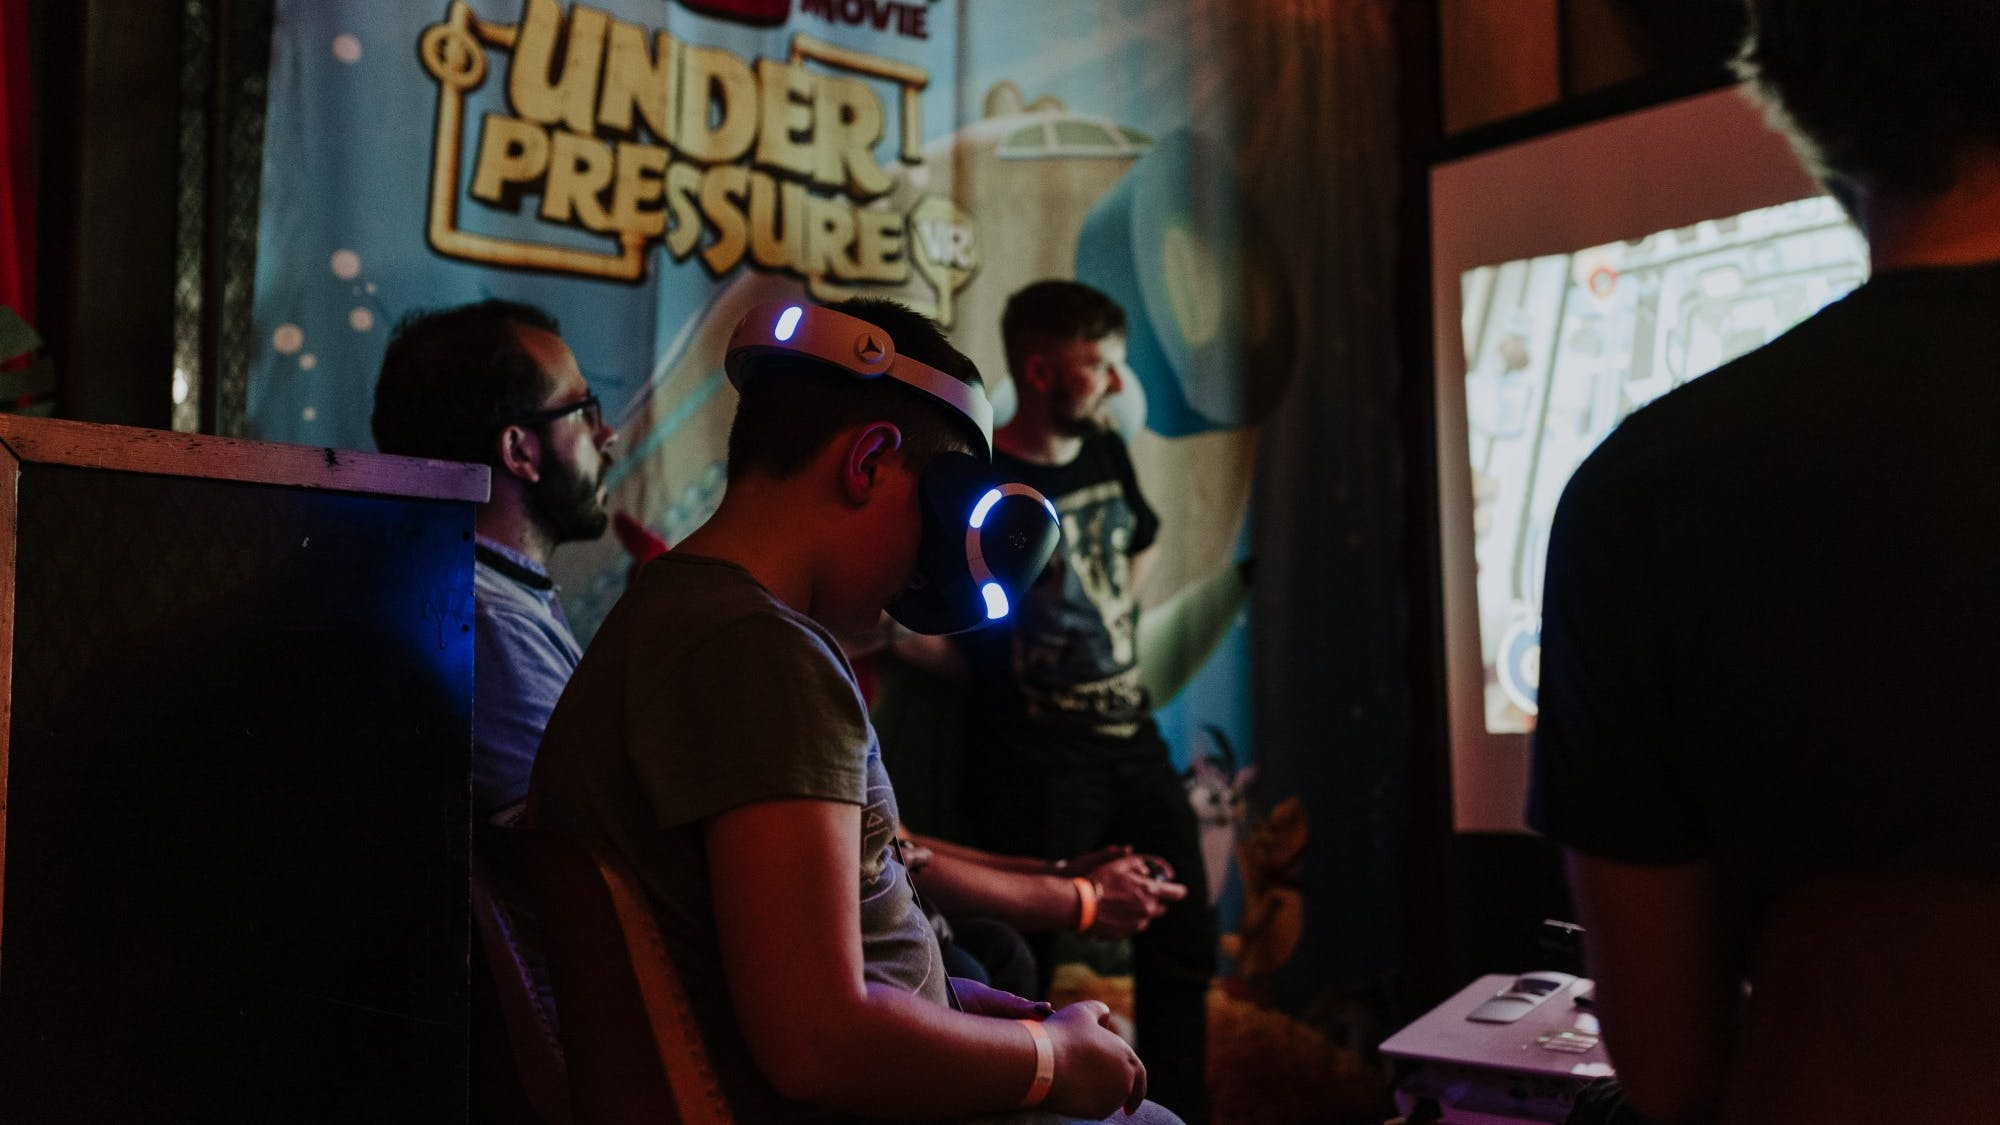 After a system reboot, Manchester's favourite gaming event has evolved into FORMAT.